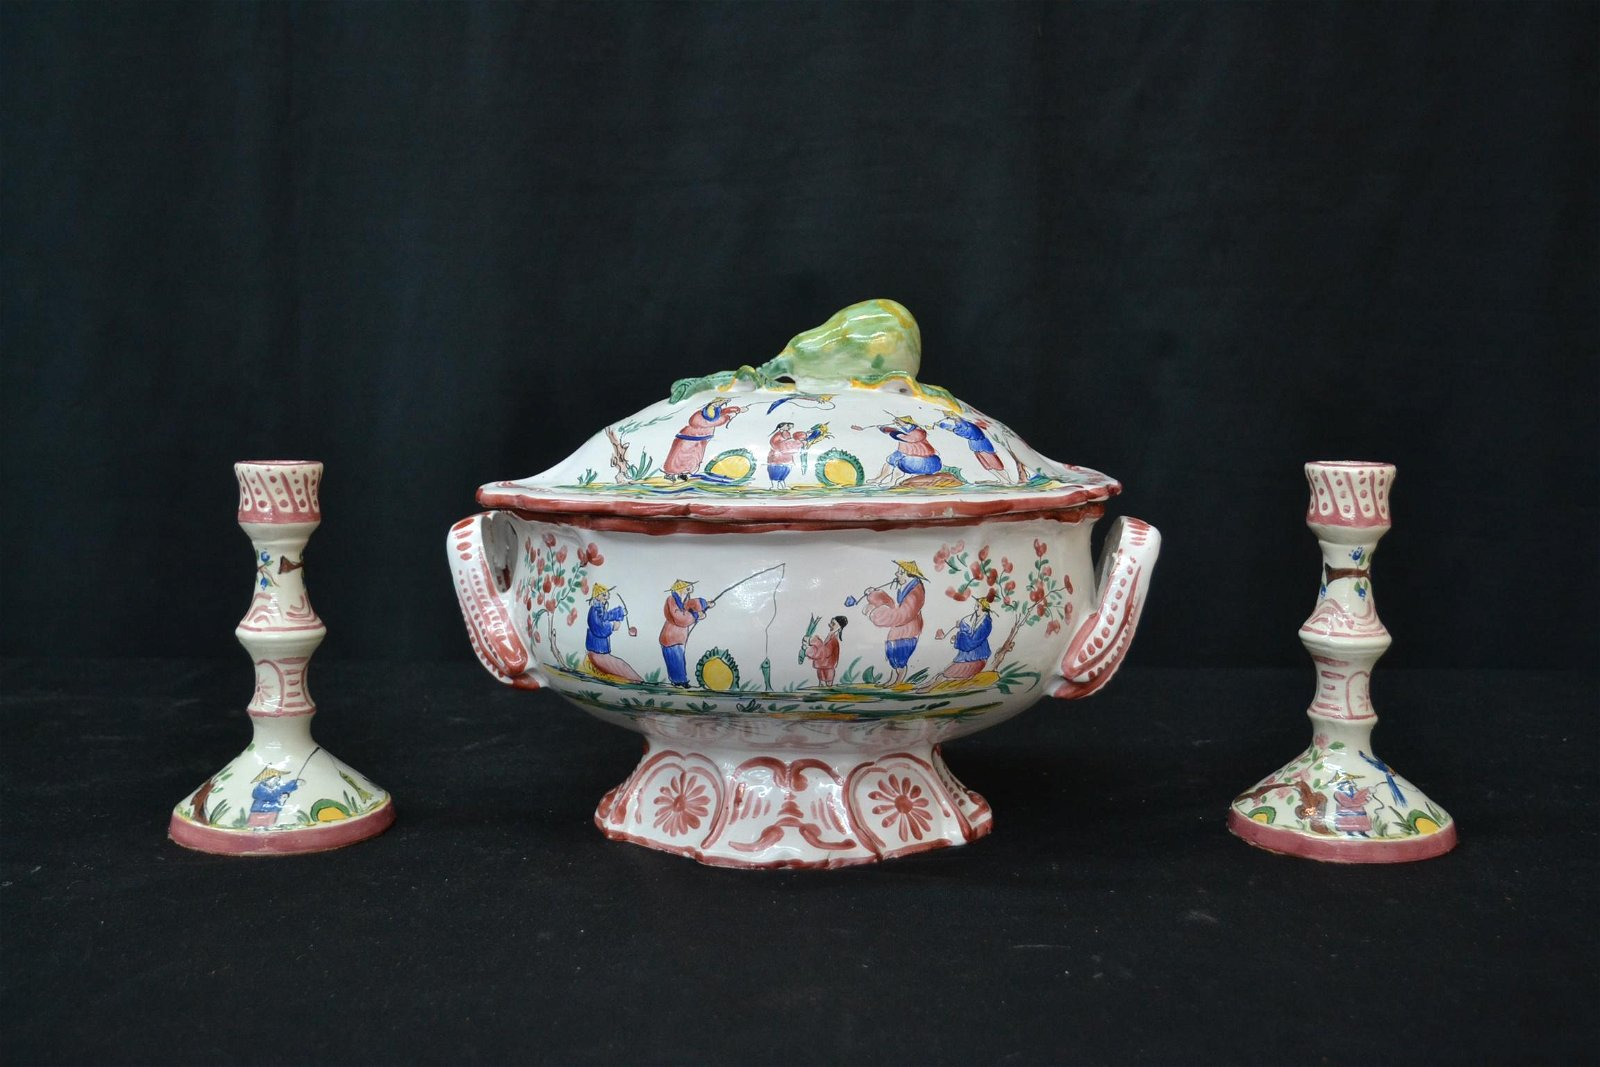 FAIENCE CHINOISERIE SOUP TUREEN & CANDLESTICKS